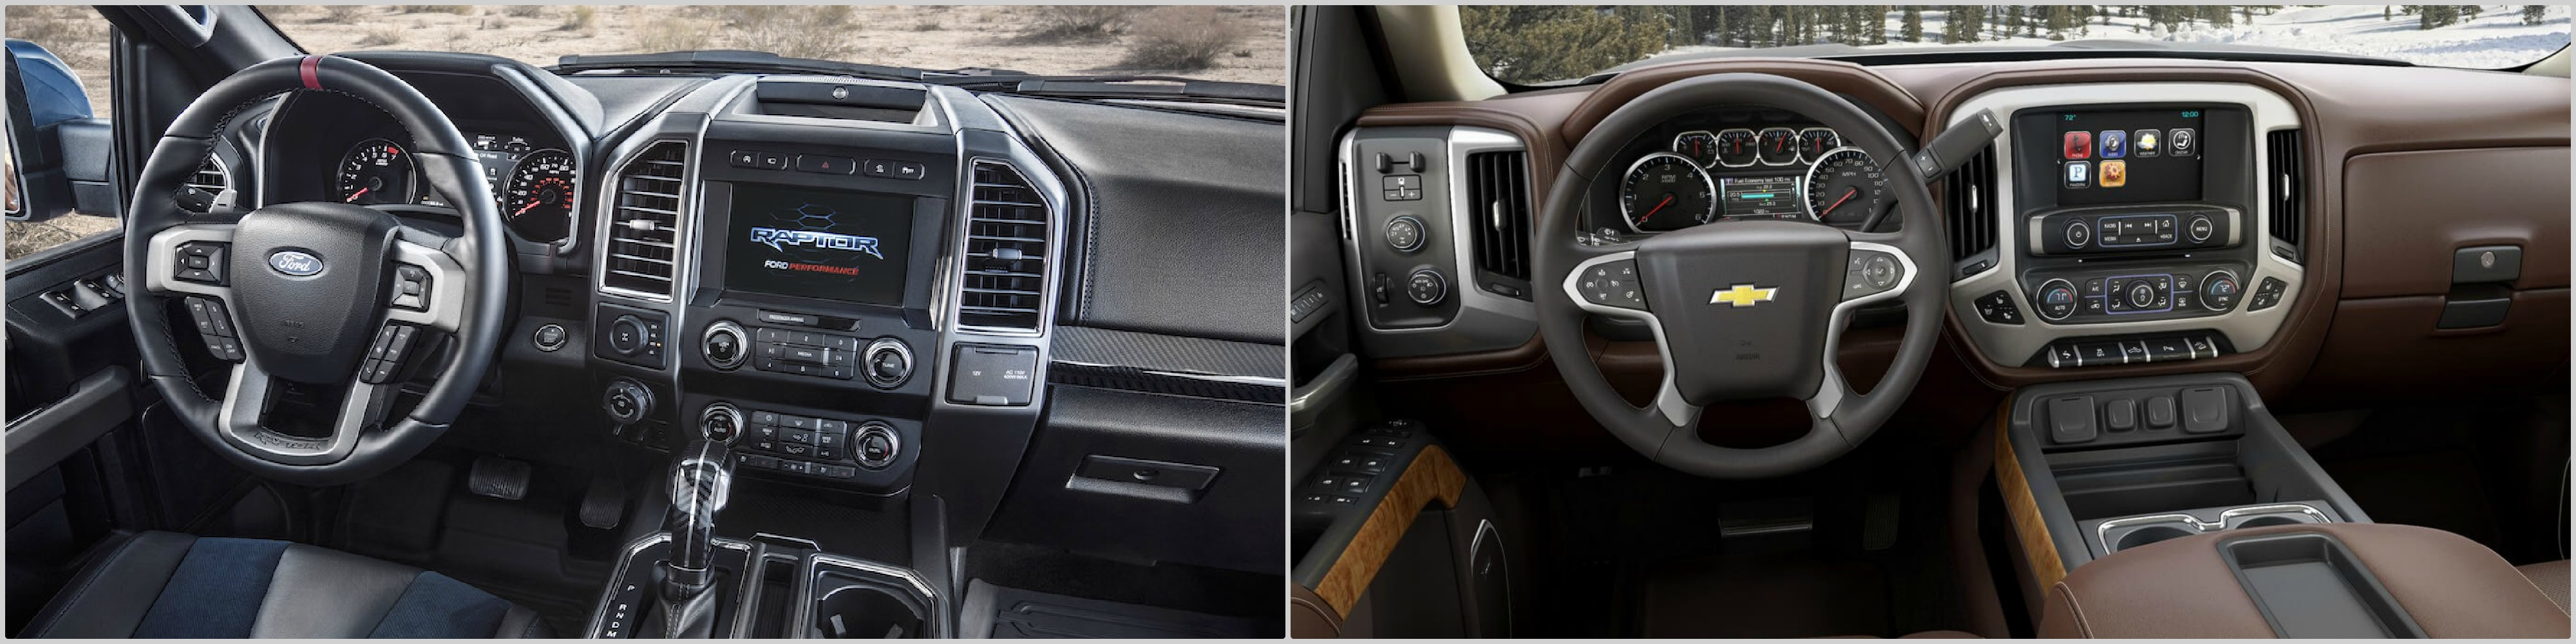 the interior dashboard of a used Raptor vs. a Chevy Reaper